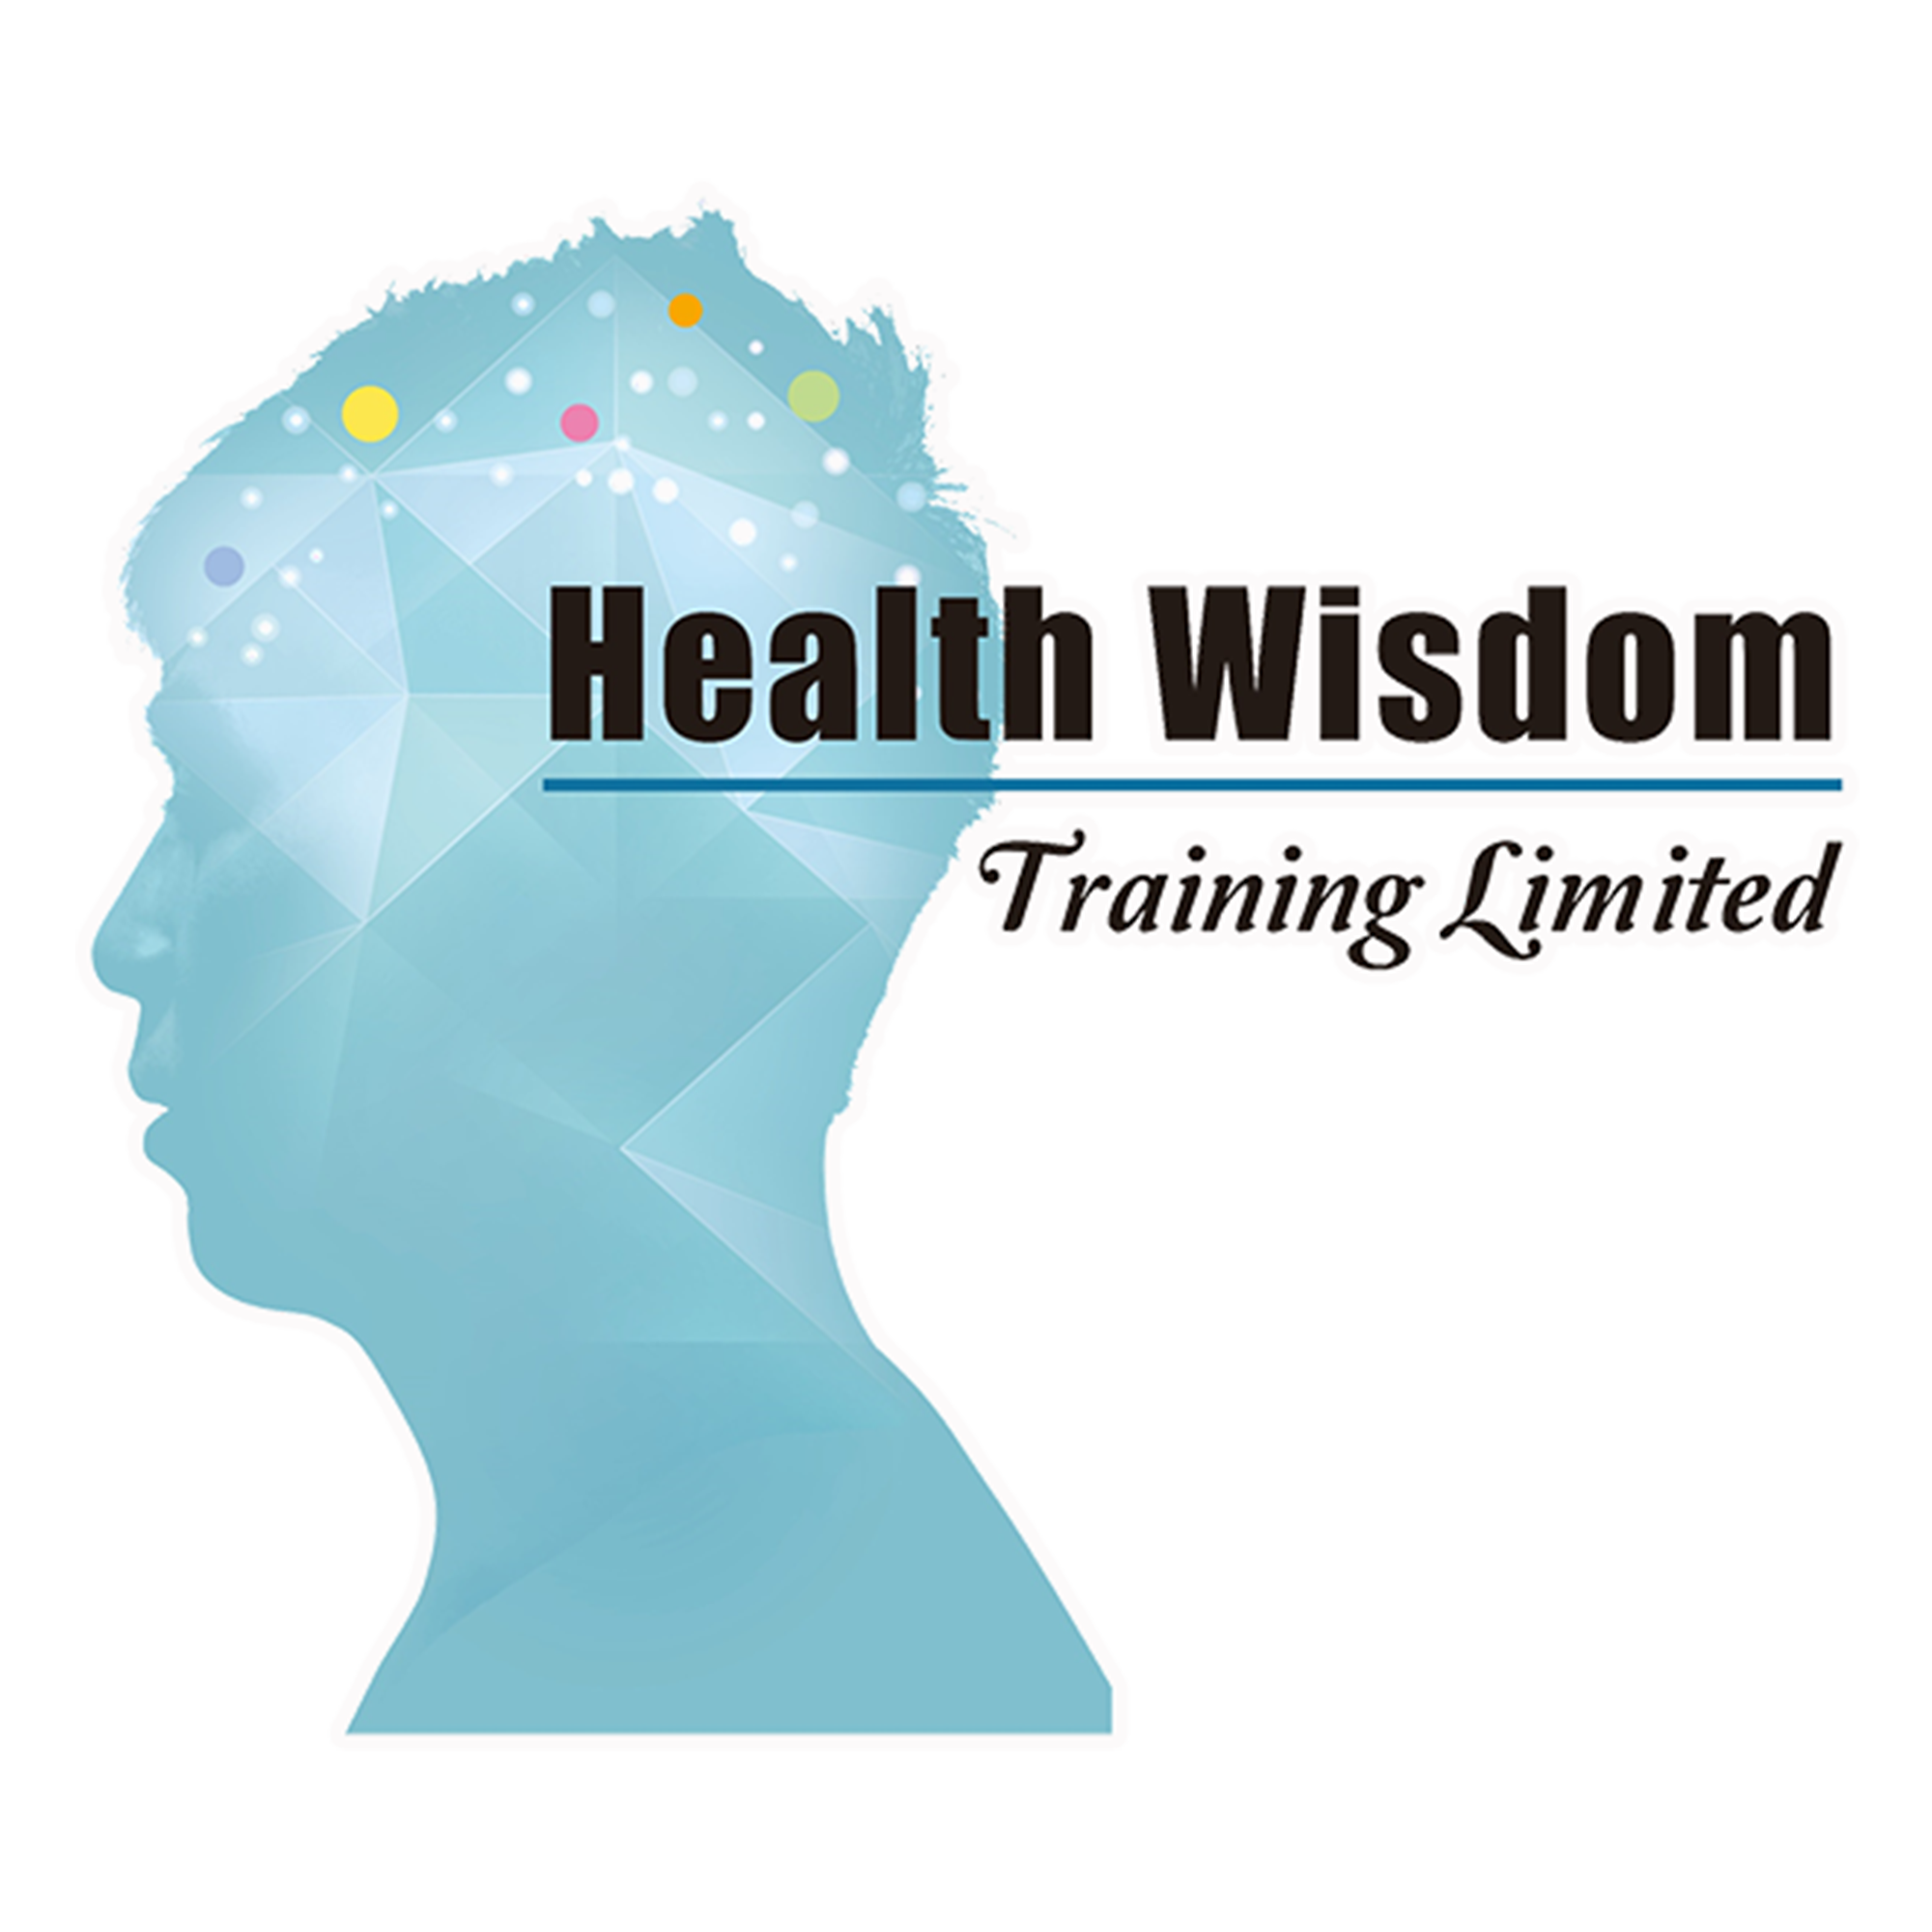 Health Wisdom Training